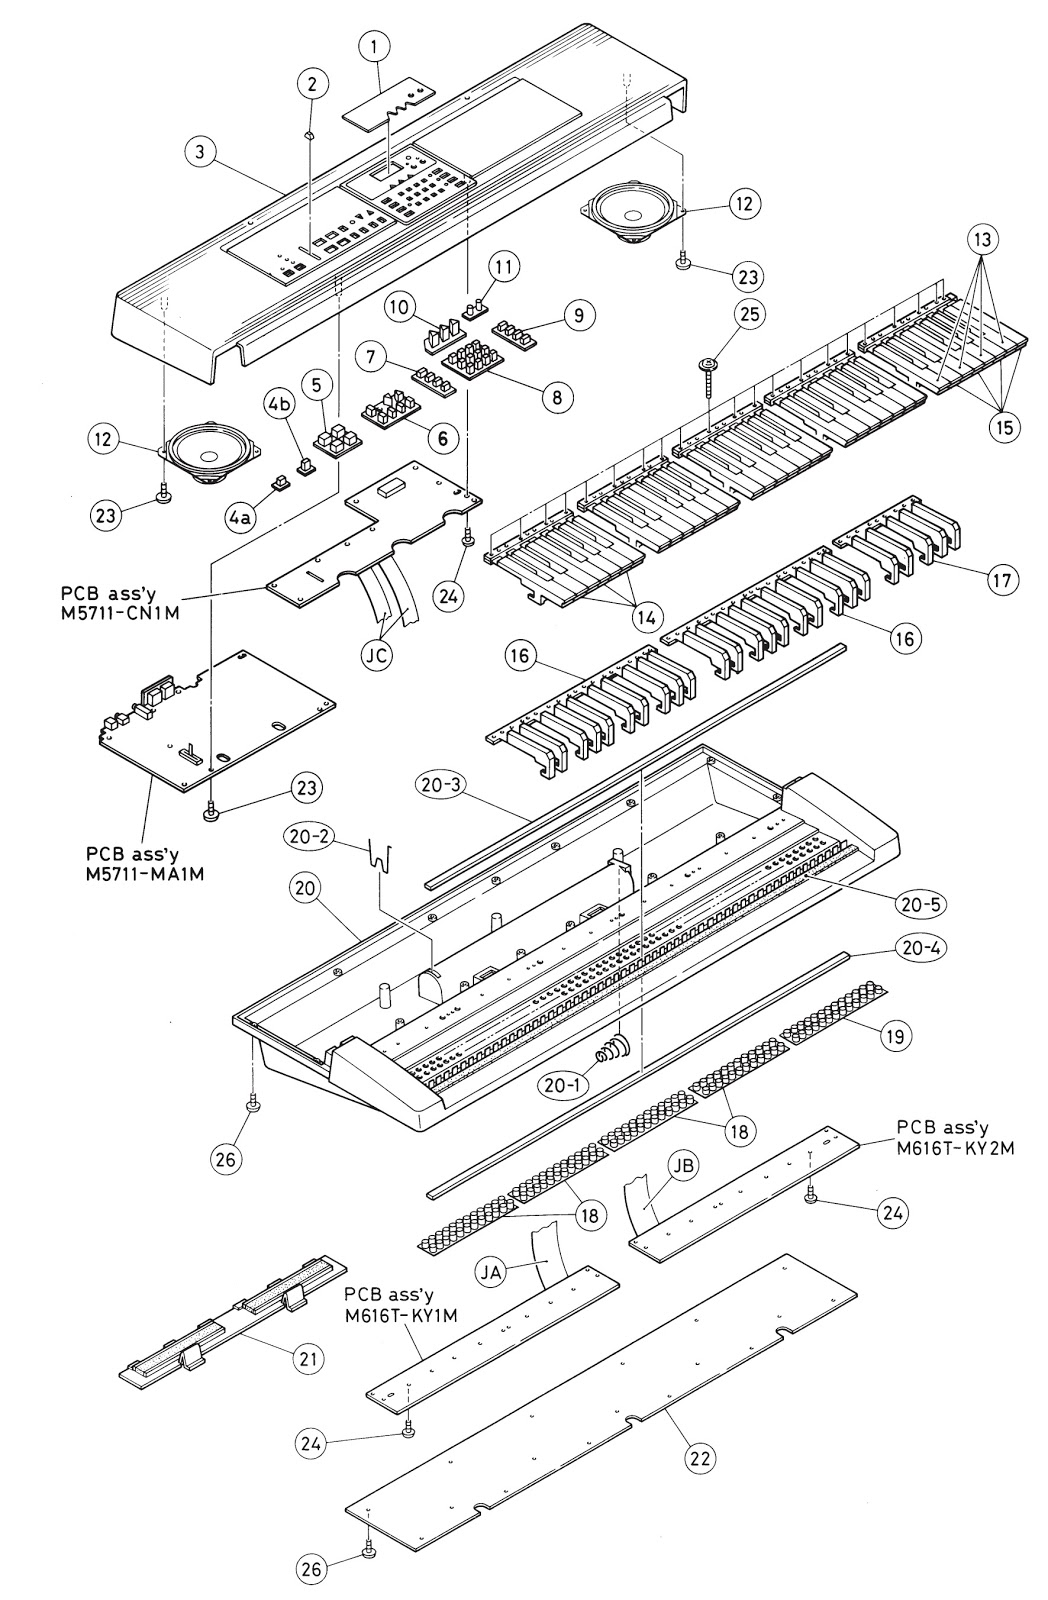 Casio Ctk 650 Electronic Keyboard Circuit Diagram Electrotechnician Schematic